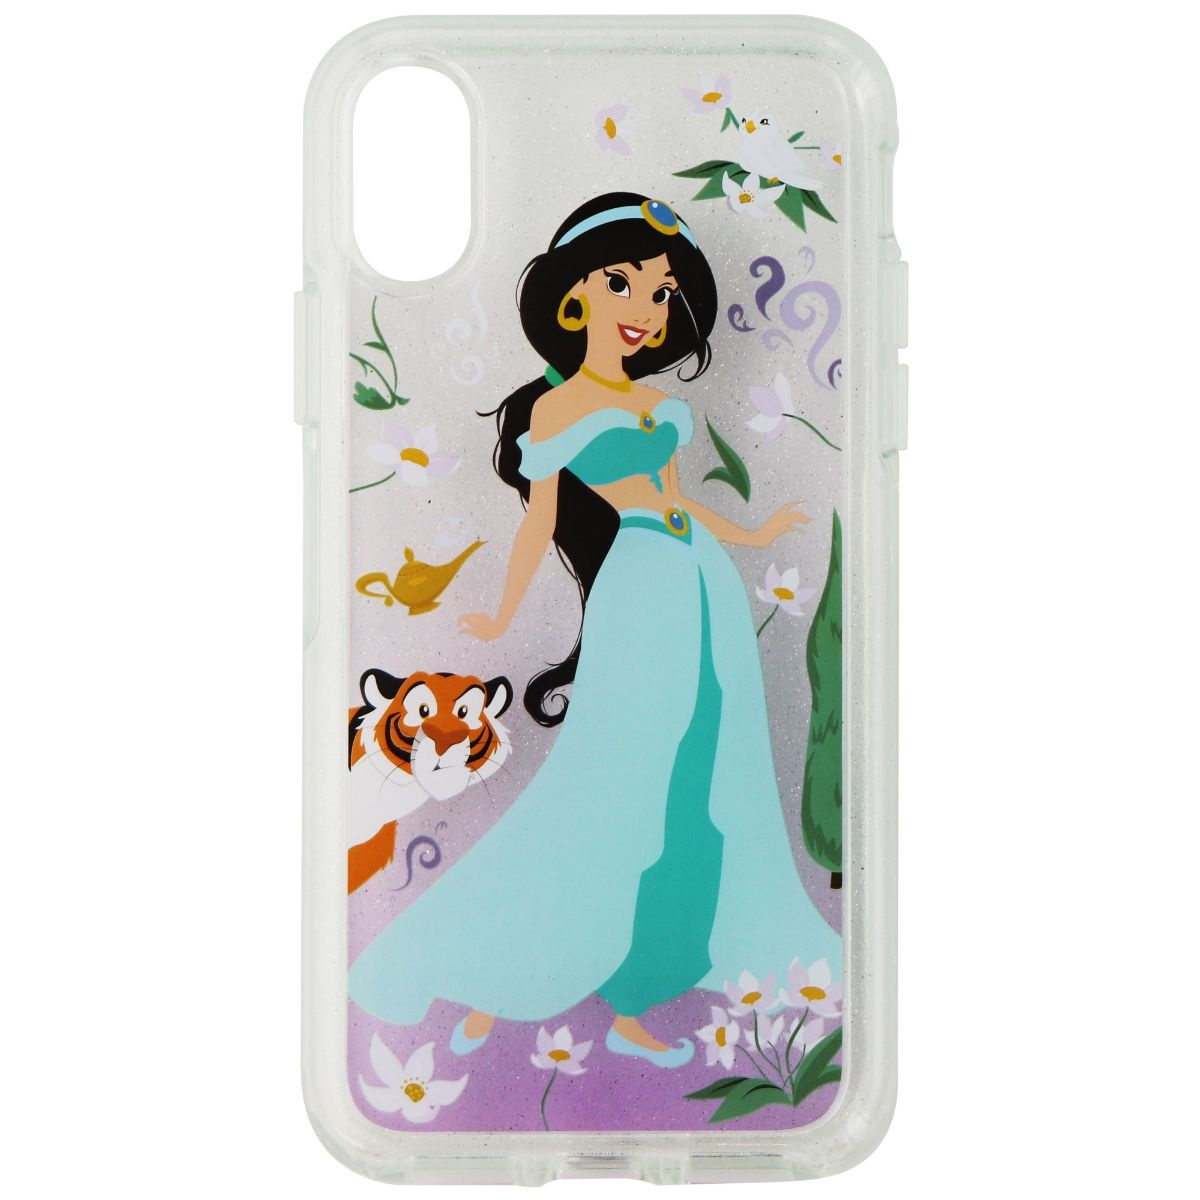 OtterBox Symmetry Princess Case for iPhone Xs/X - Oasis of Independence Jasmine